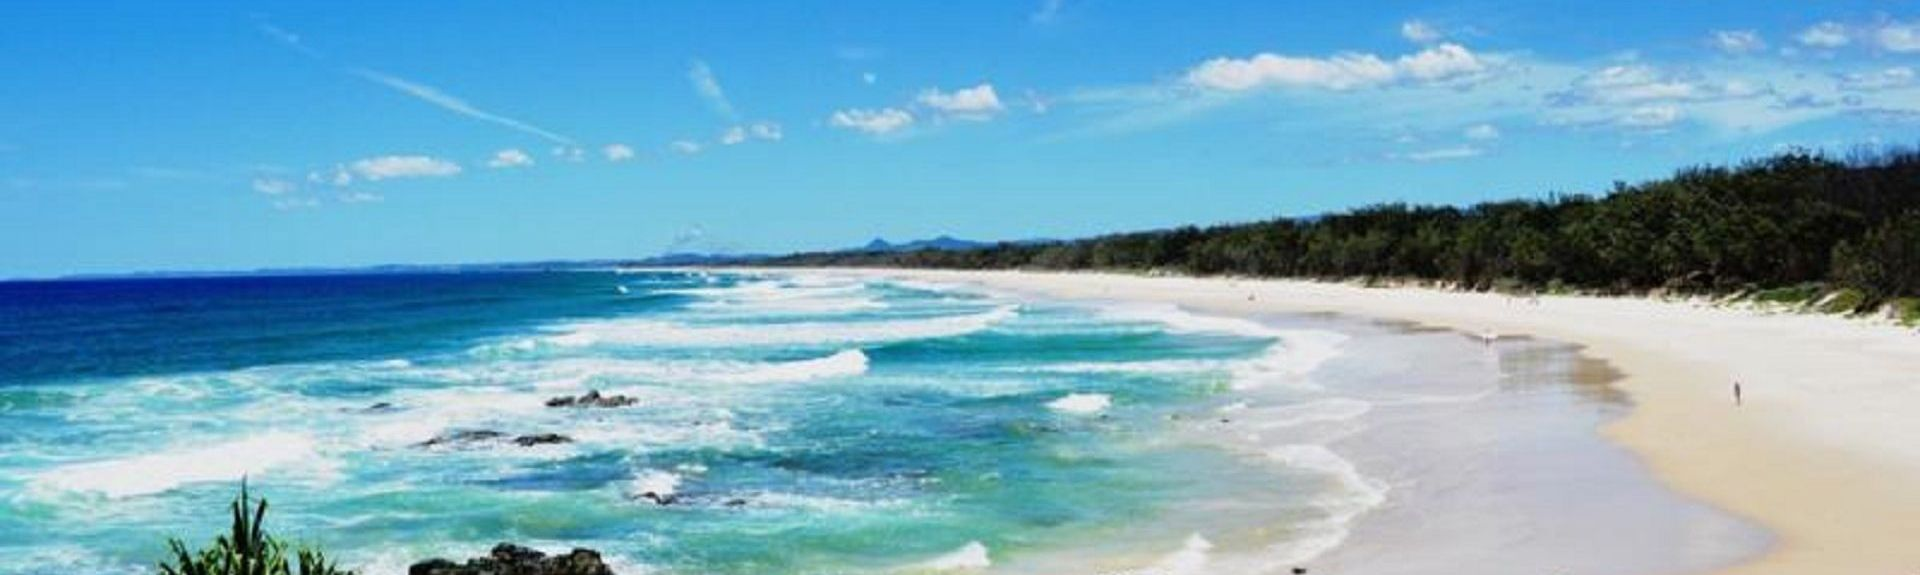 South Golden Beach, New South Wales, Australia